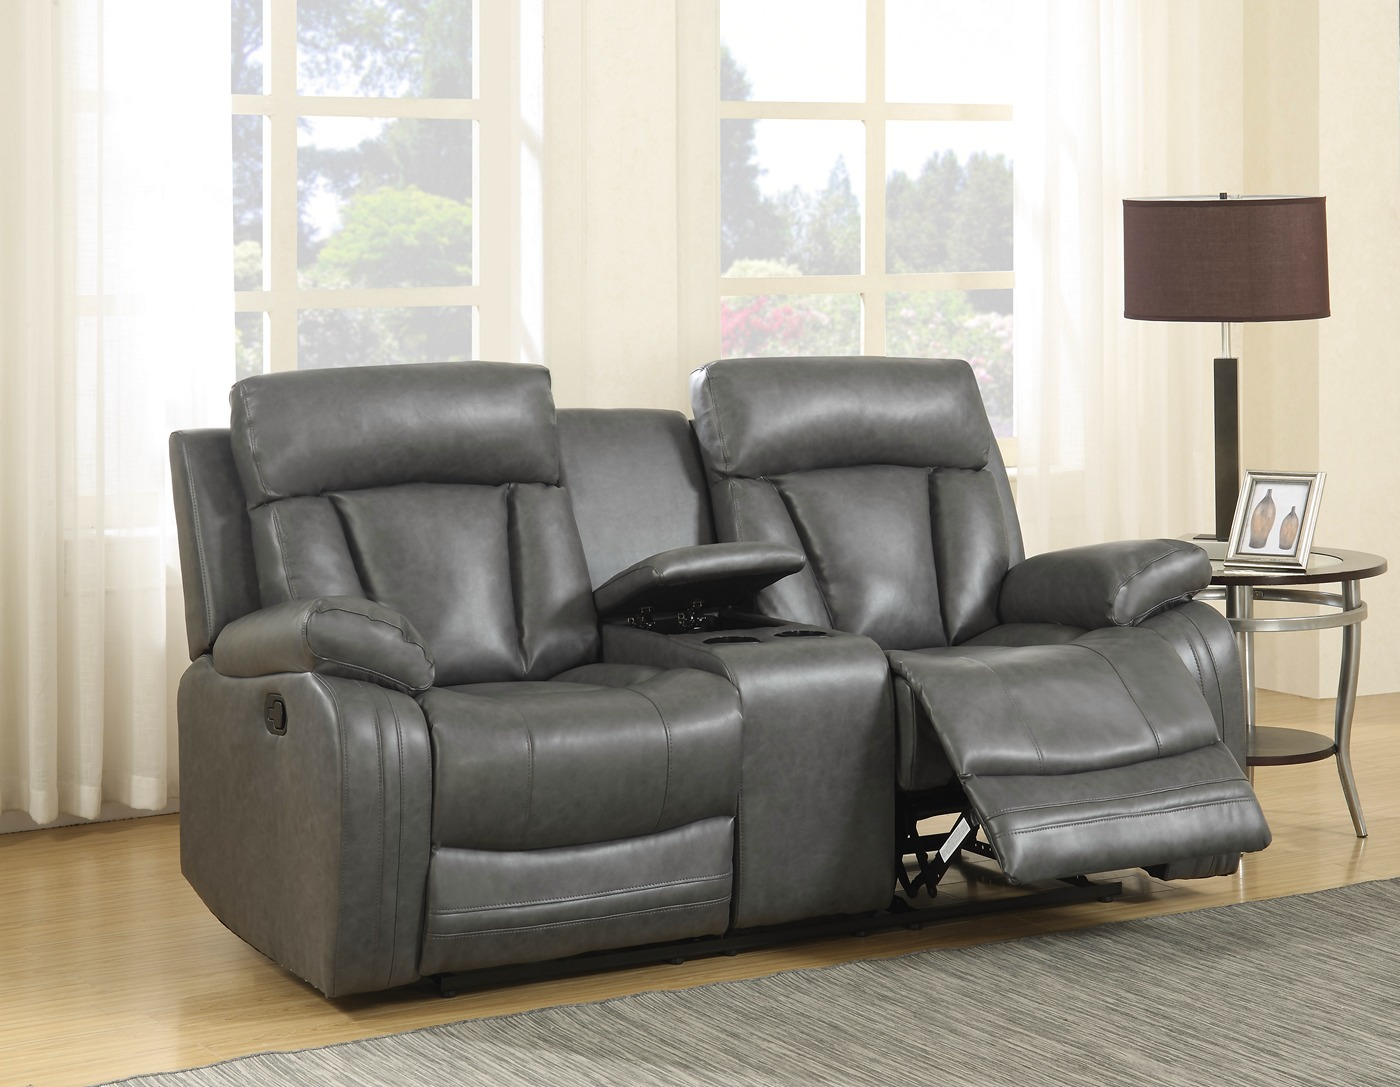 modern bonded leather sectional sofa with recliners ikea manstad bed for sale kyson grey reclining and loveseat